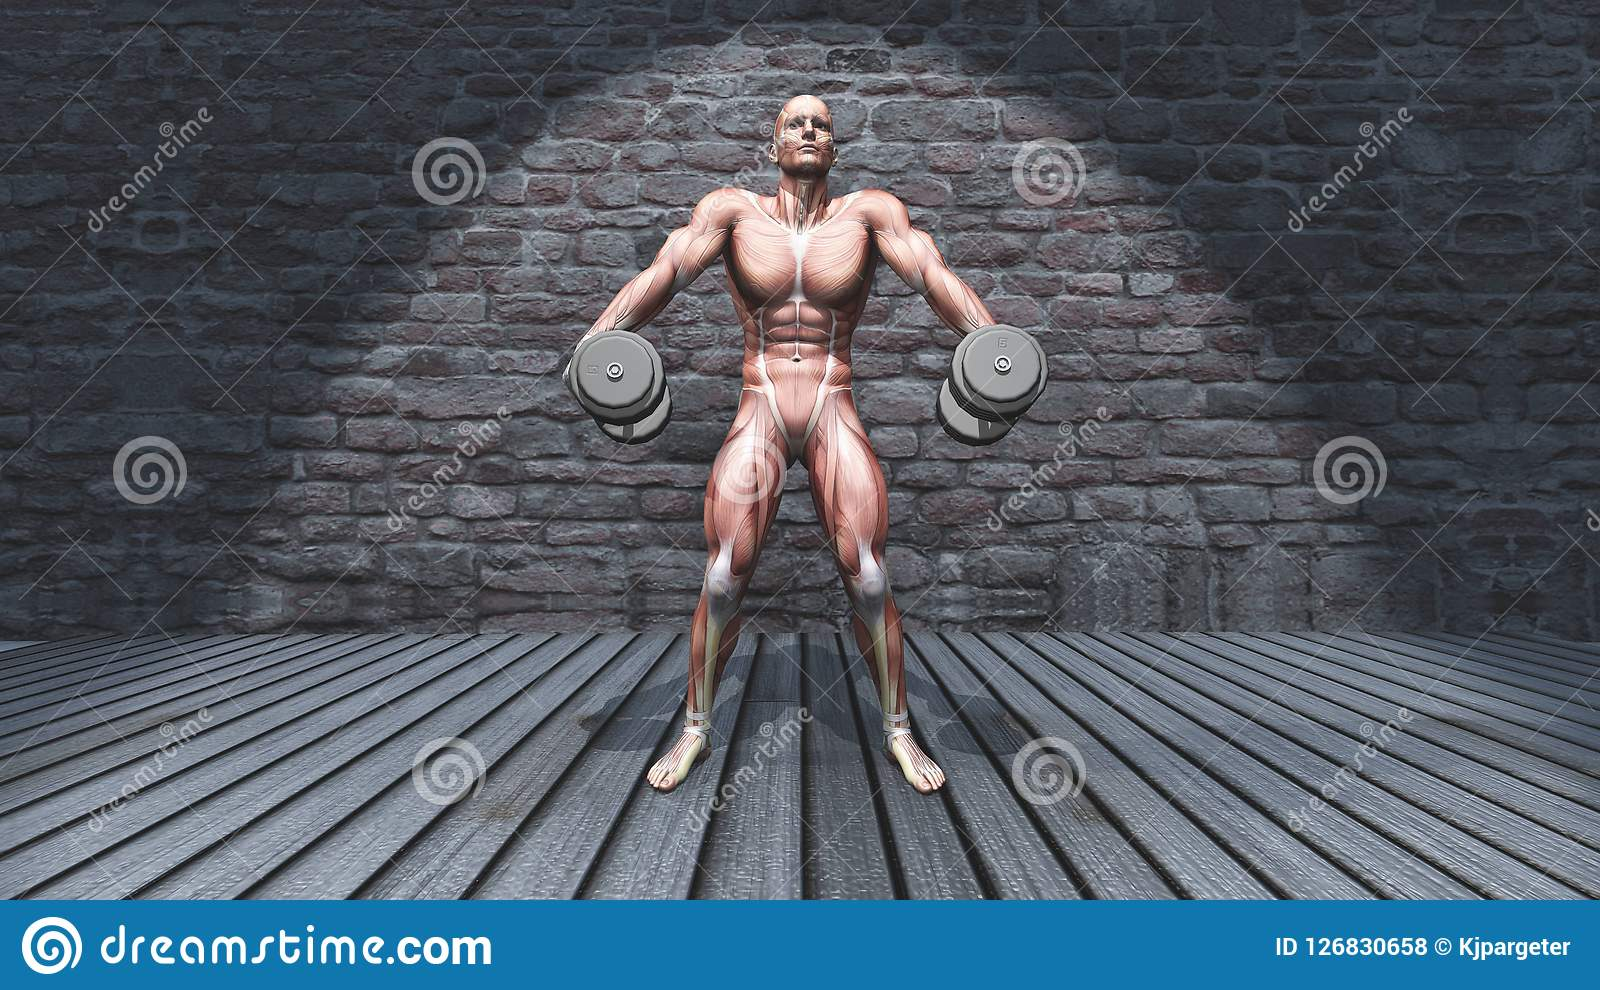 3D male figure in dumbbell shoulder shrugs raised pose in grunge